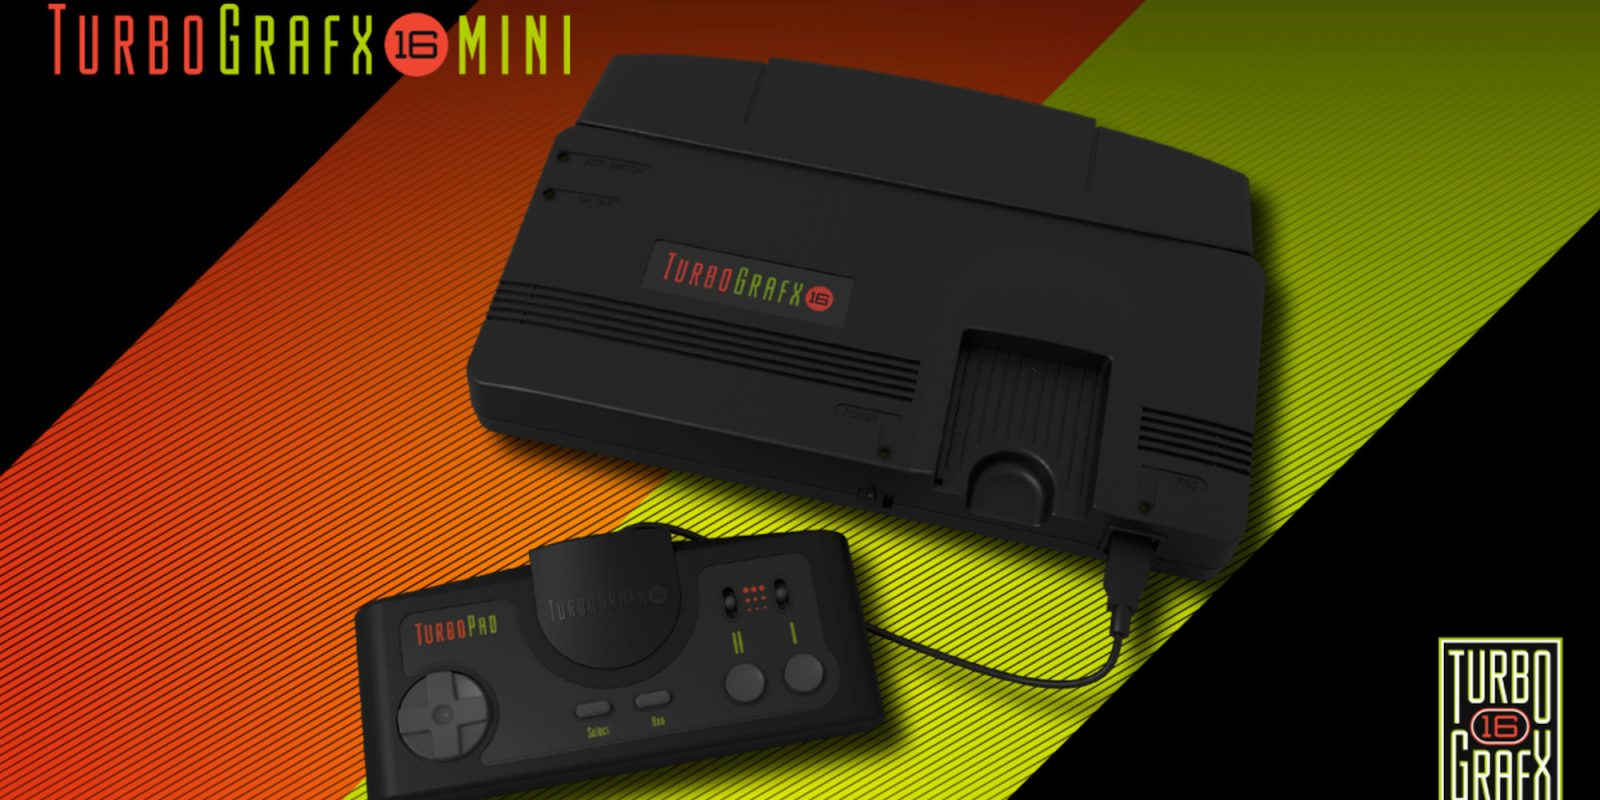 A Short Review On The TurboGrafx-16 Mini Console – The Video Game For Retro Gaming